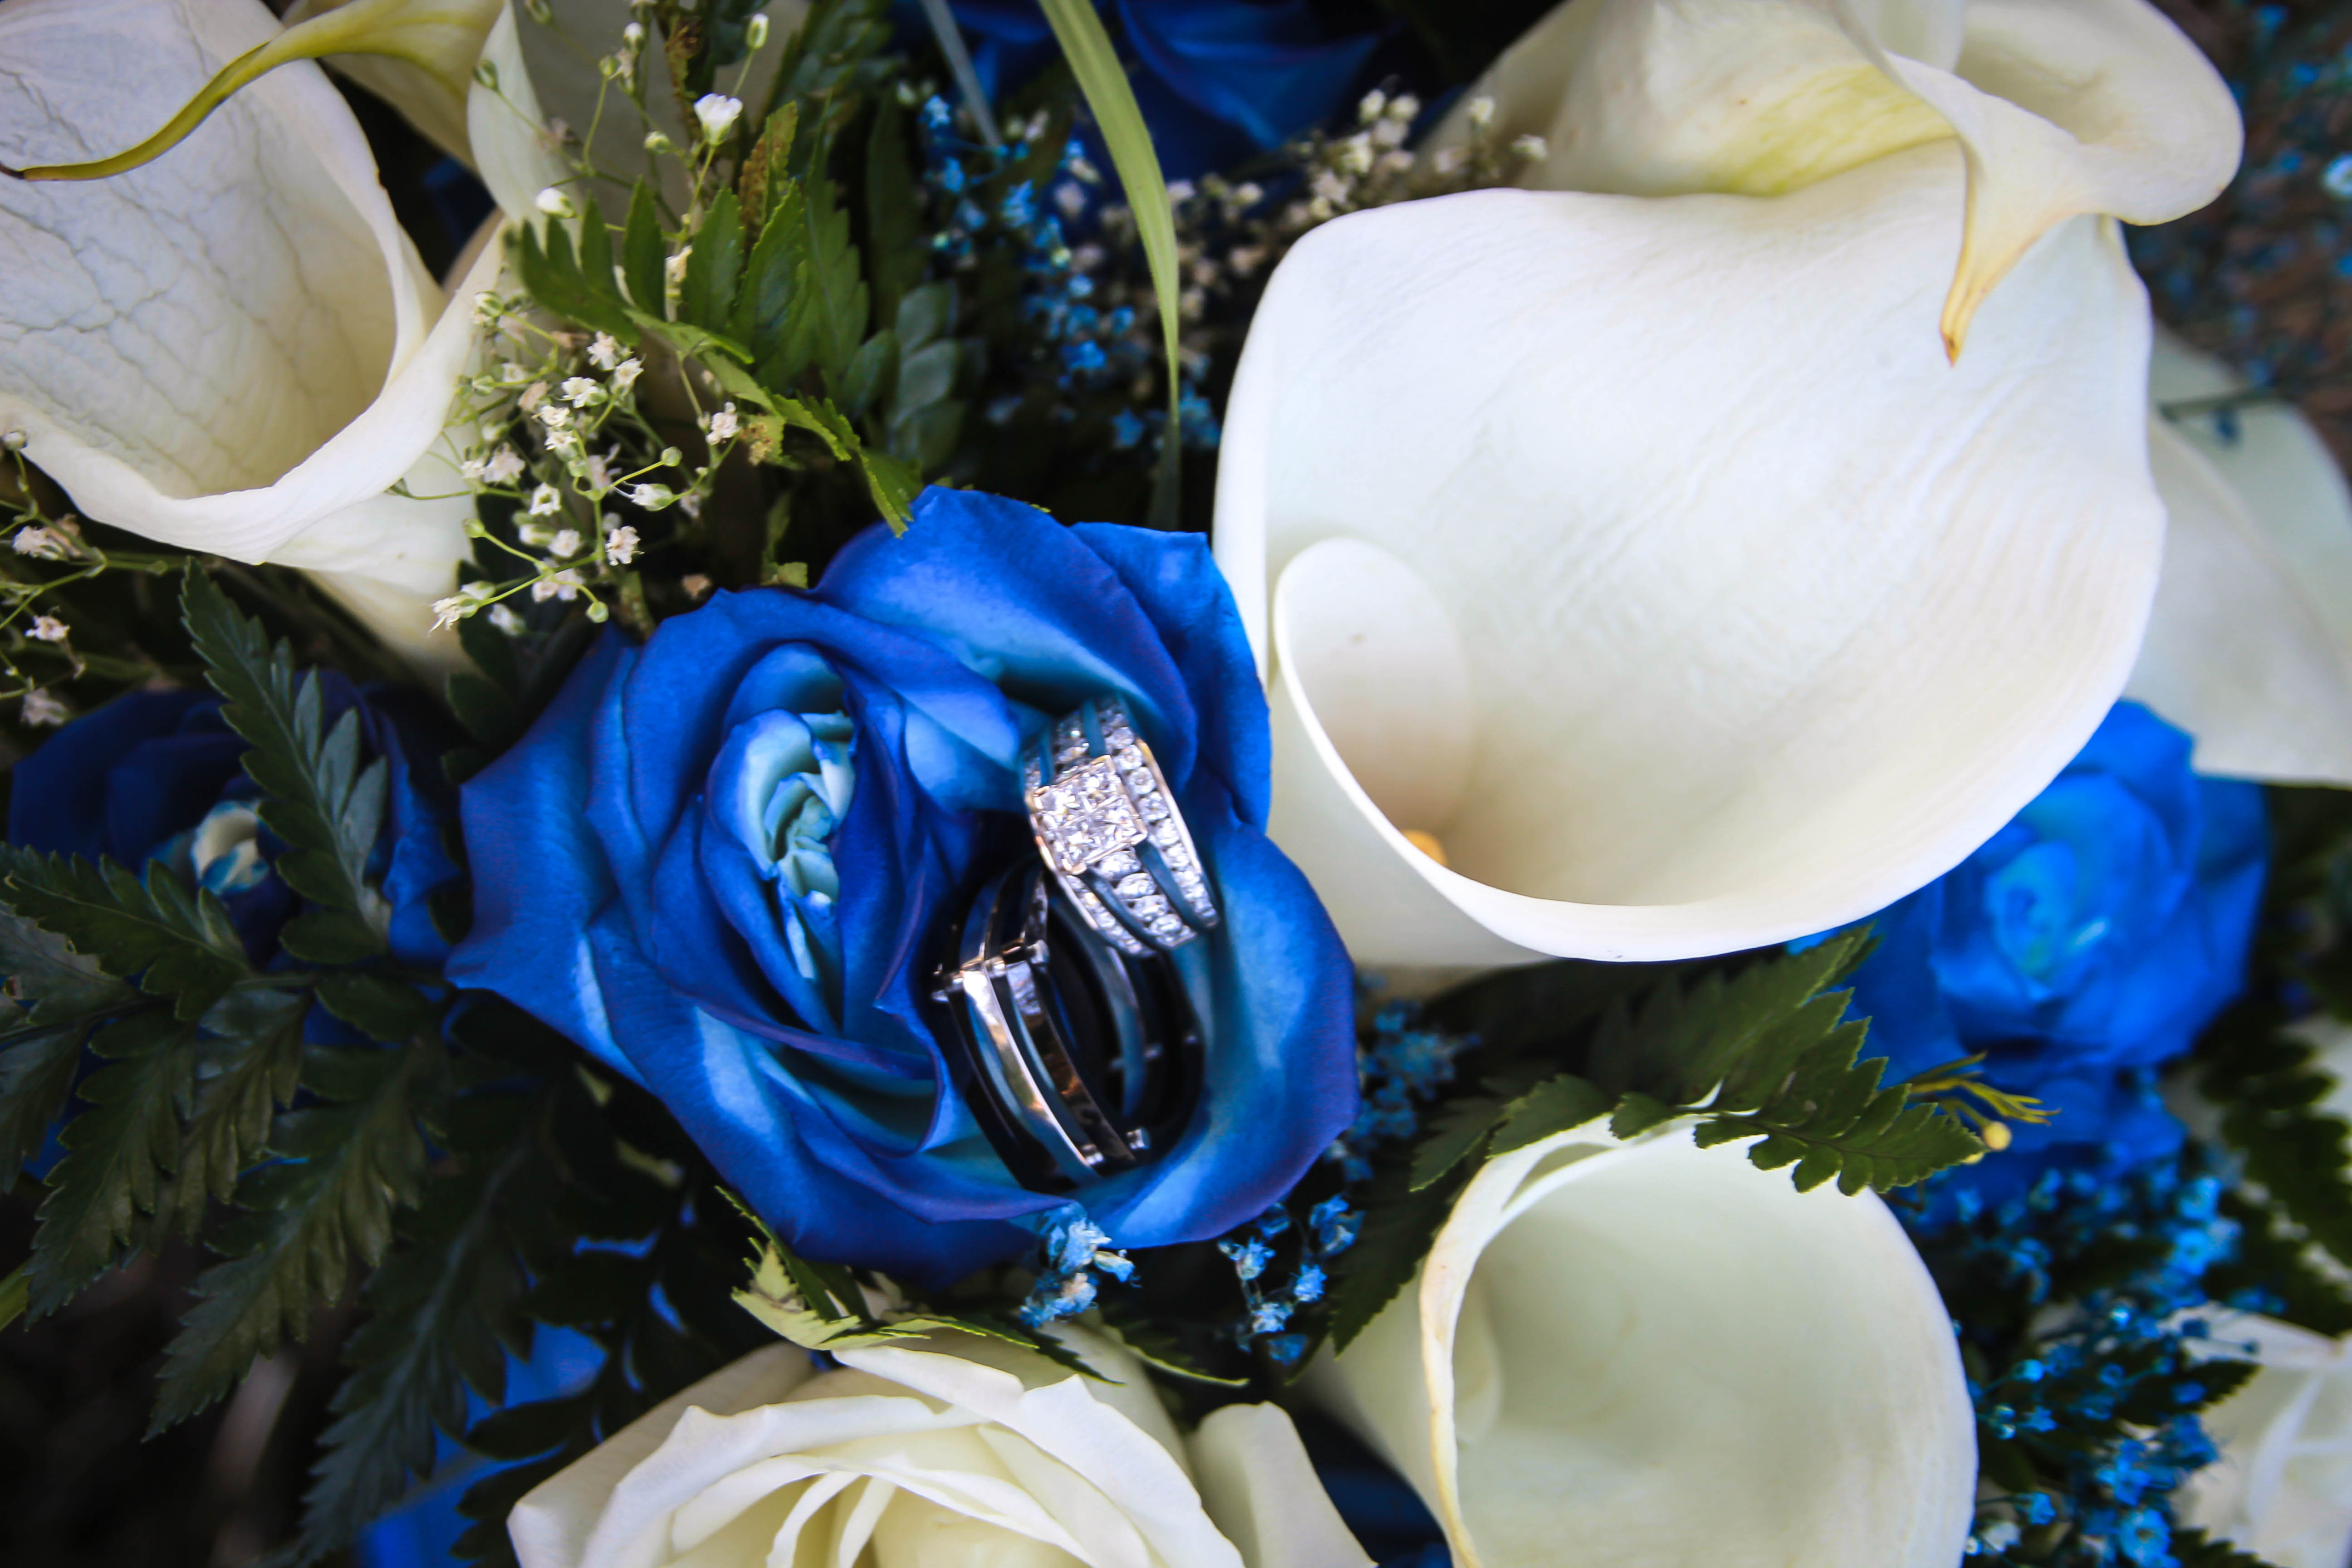 Sprayed blue roses and callas